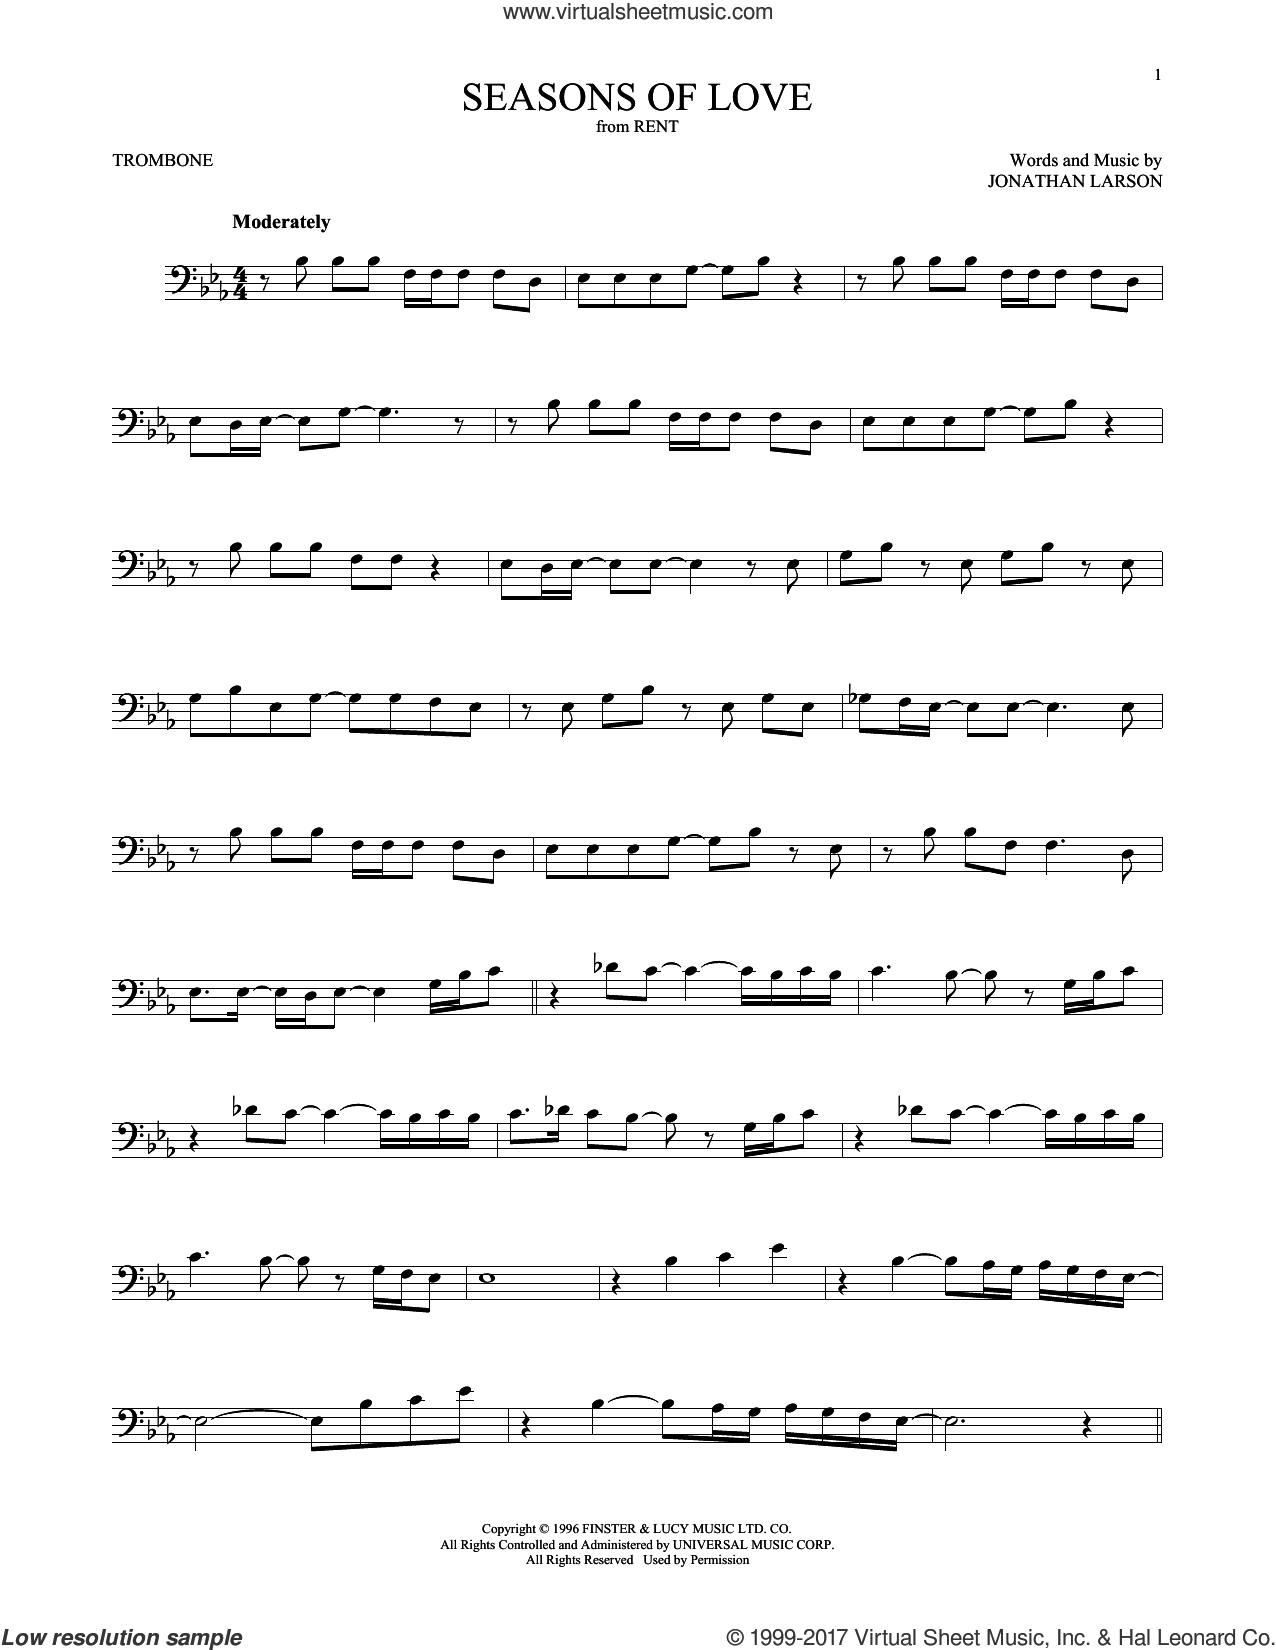 Seasons Of Love (from Rent) sheet music for trombone solo by Jonathan Larson, intermediate skill level